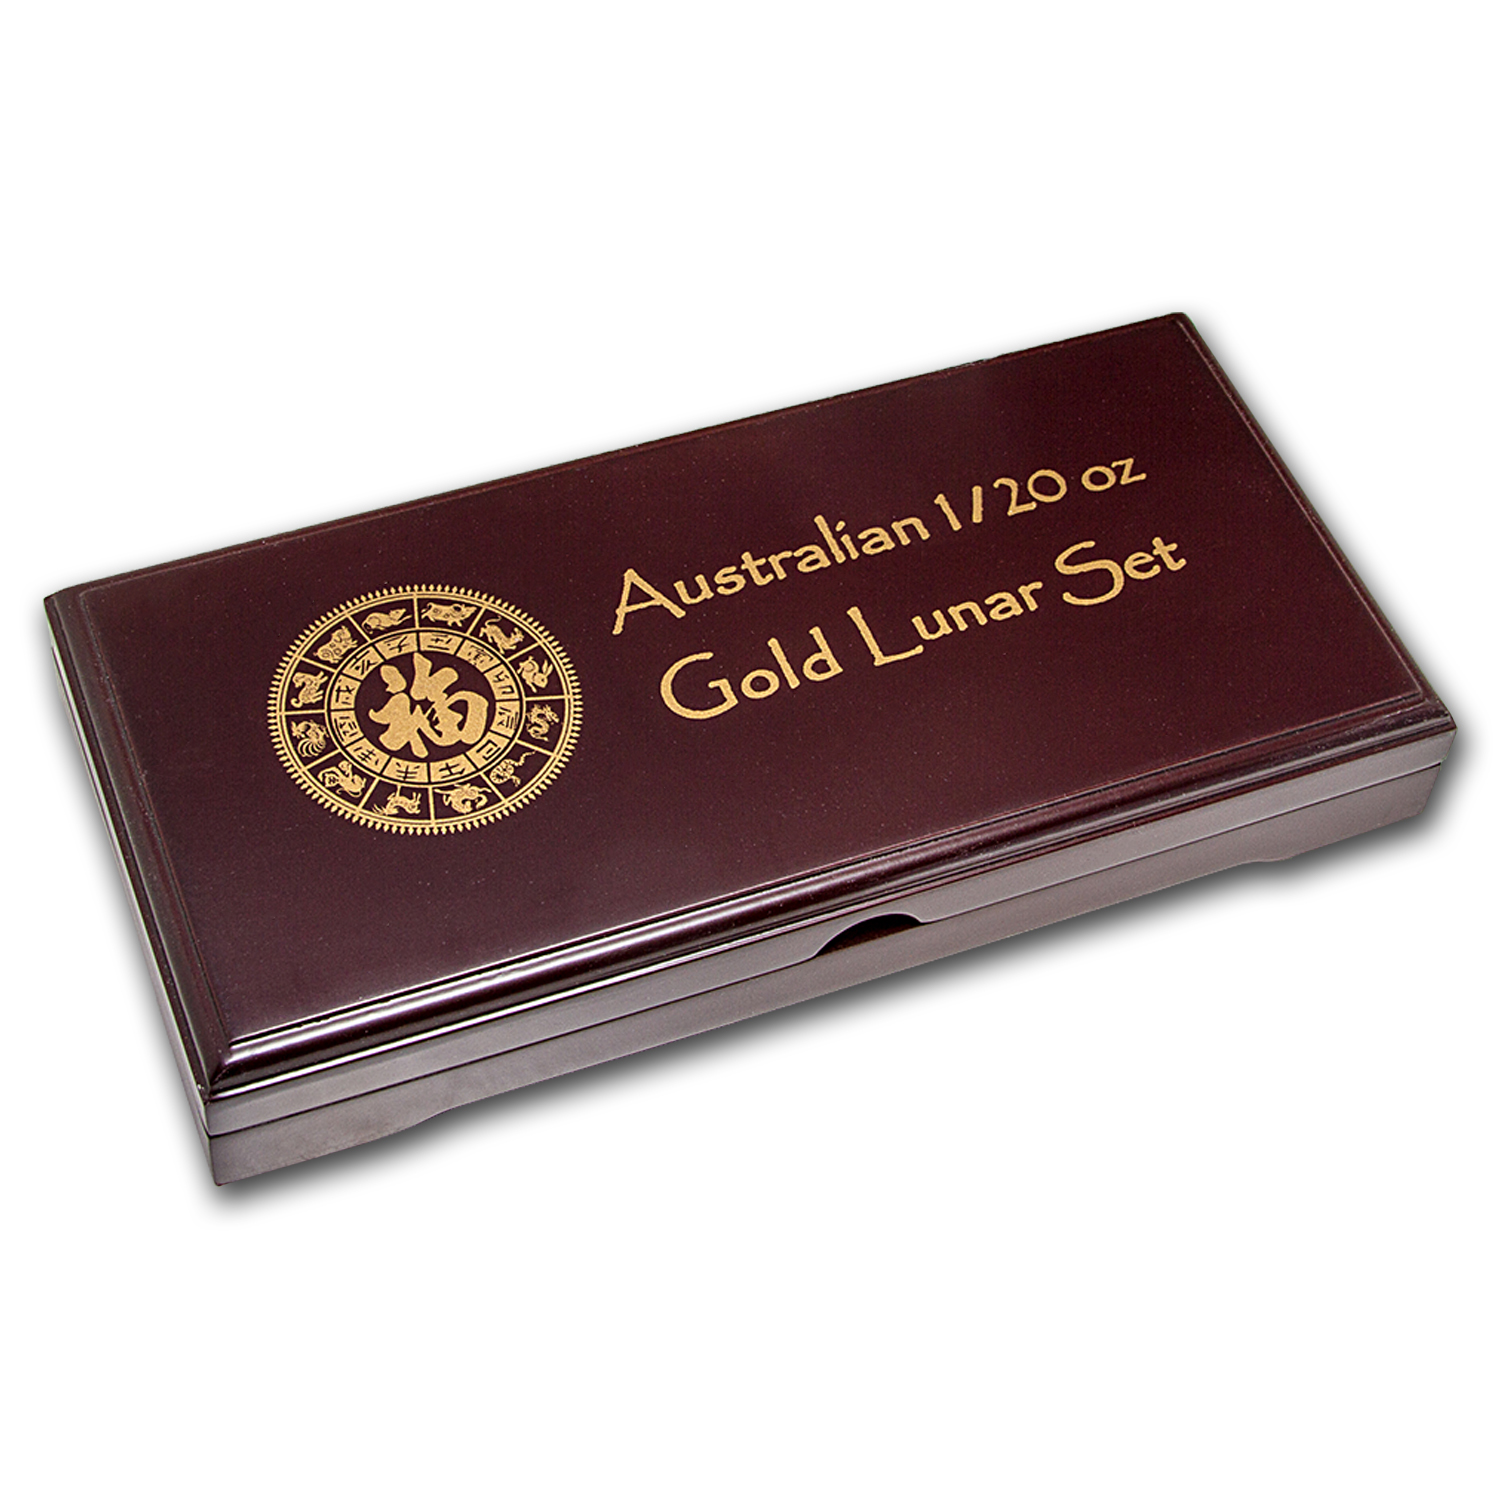 Lunar Series I (1/20 oz Gold) 12 Coin Wood Presentation Box